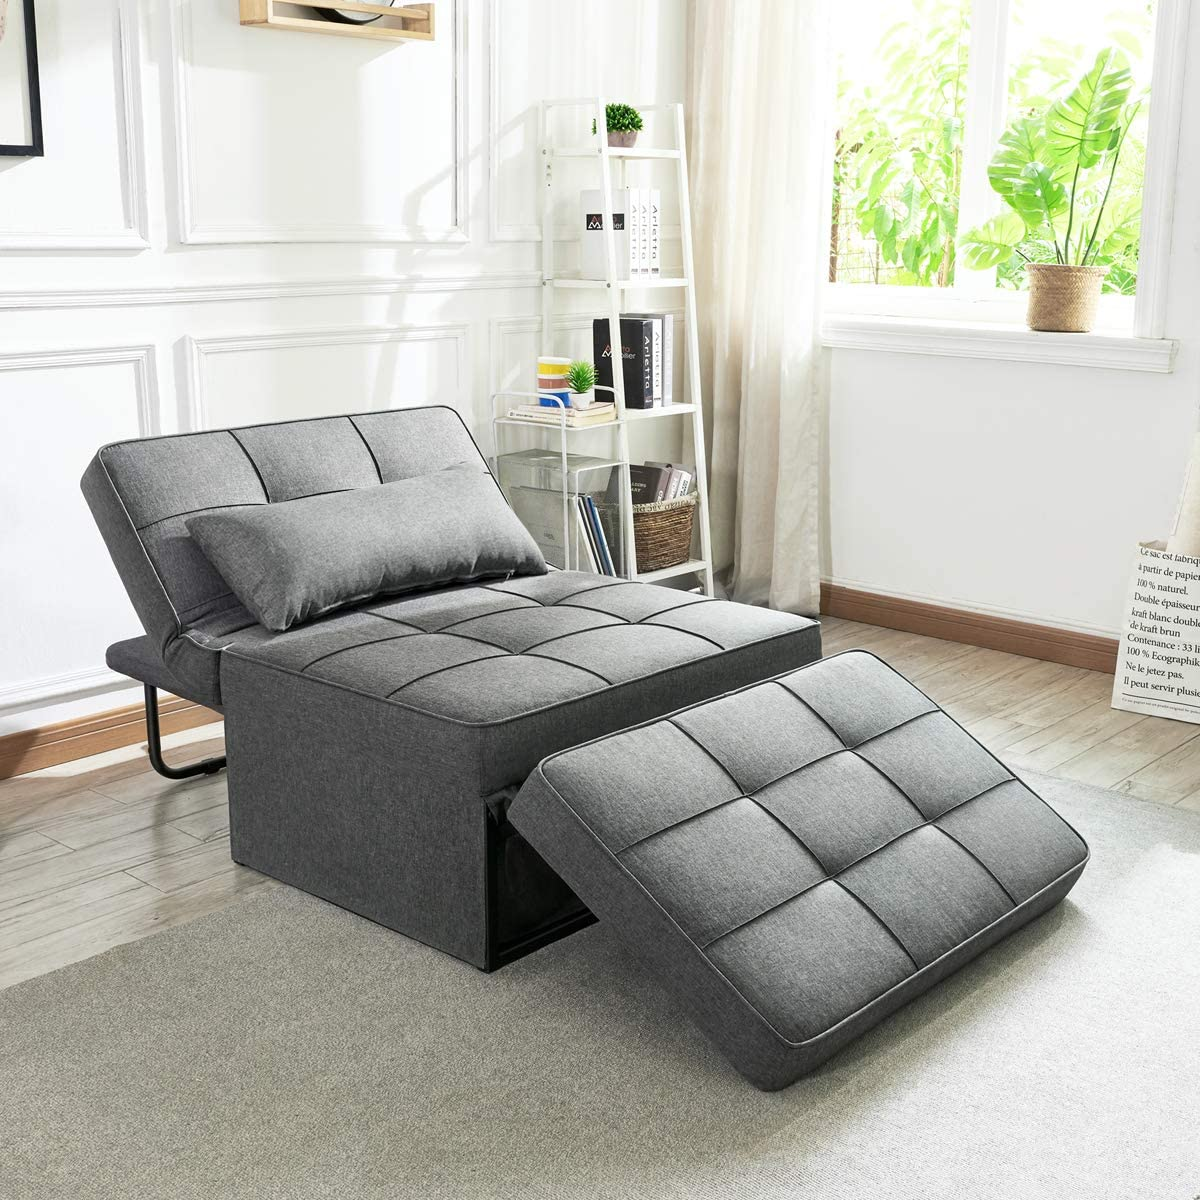 Fixed Max 48% OFF price for sale Vonanda Sofa Bed Convertible Chair in 1 4 Foldin Multi-Function